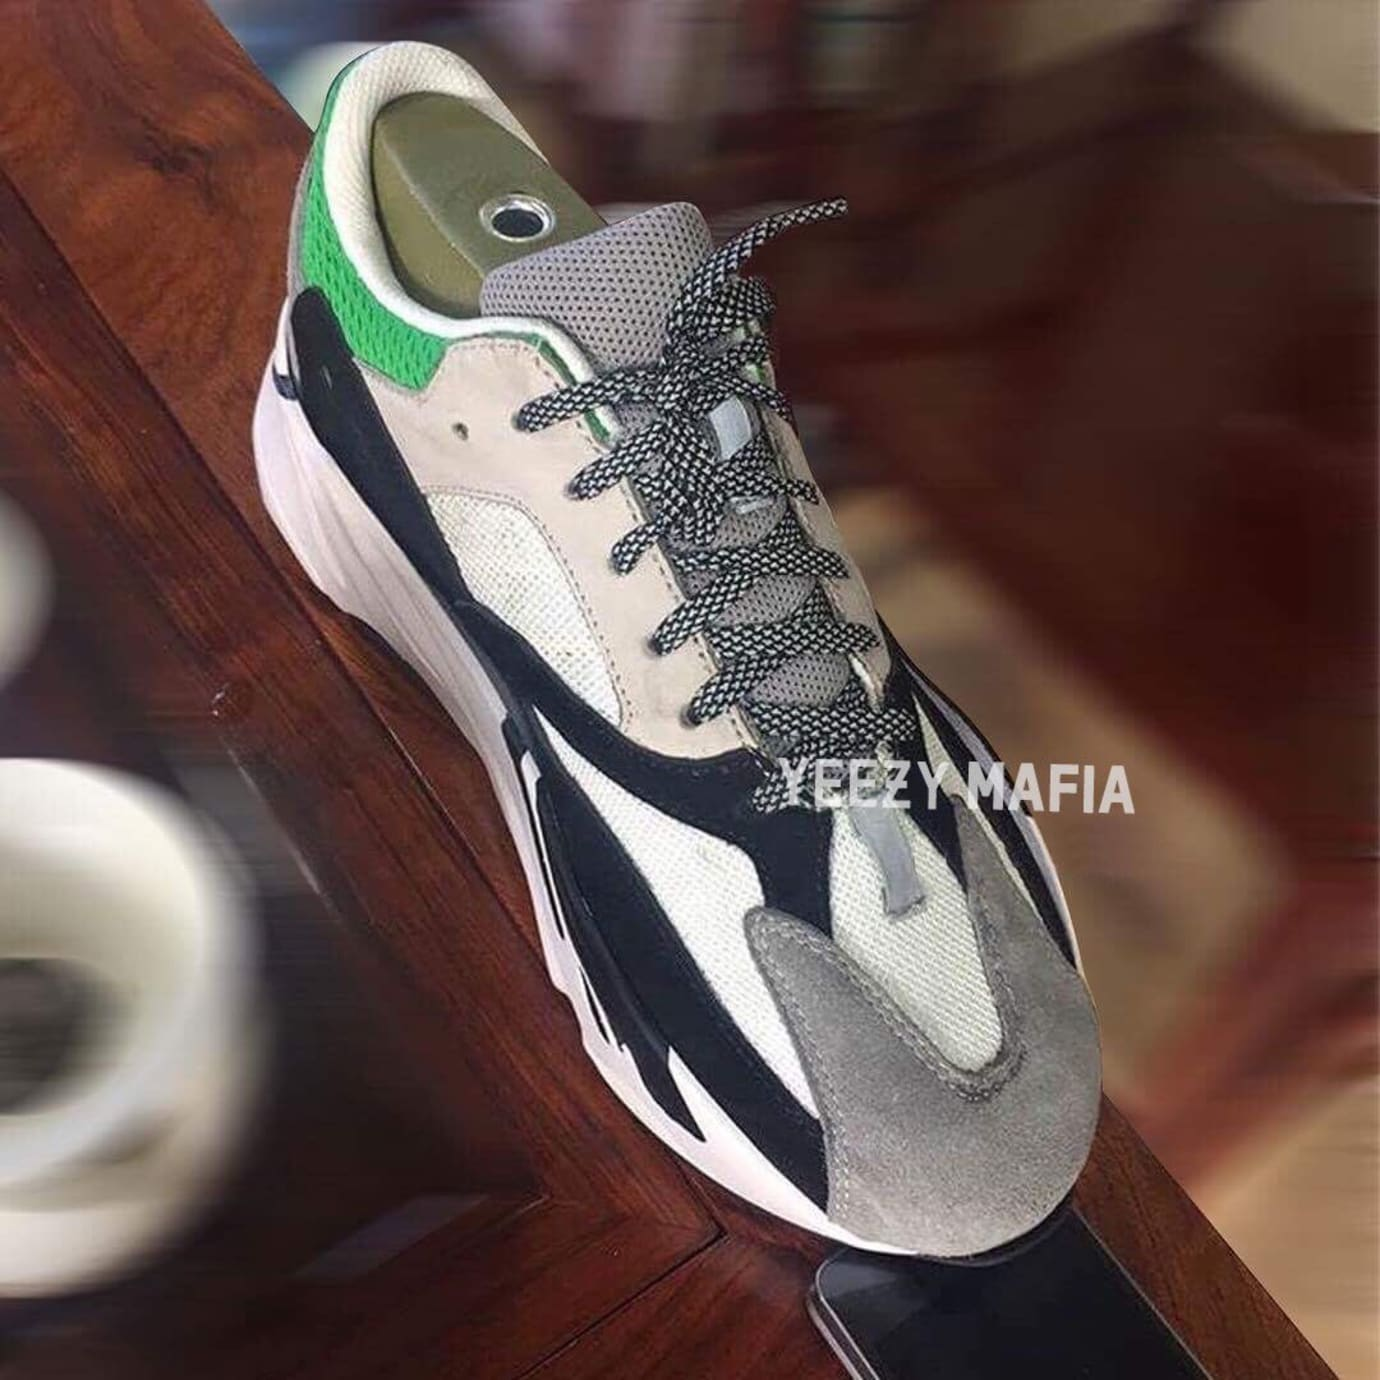 Adidas Yeezy Boost 700 Tan Green Front